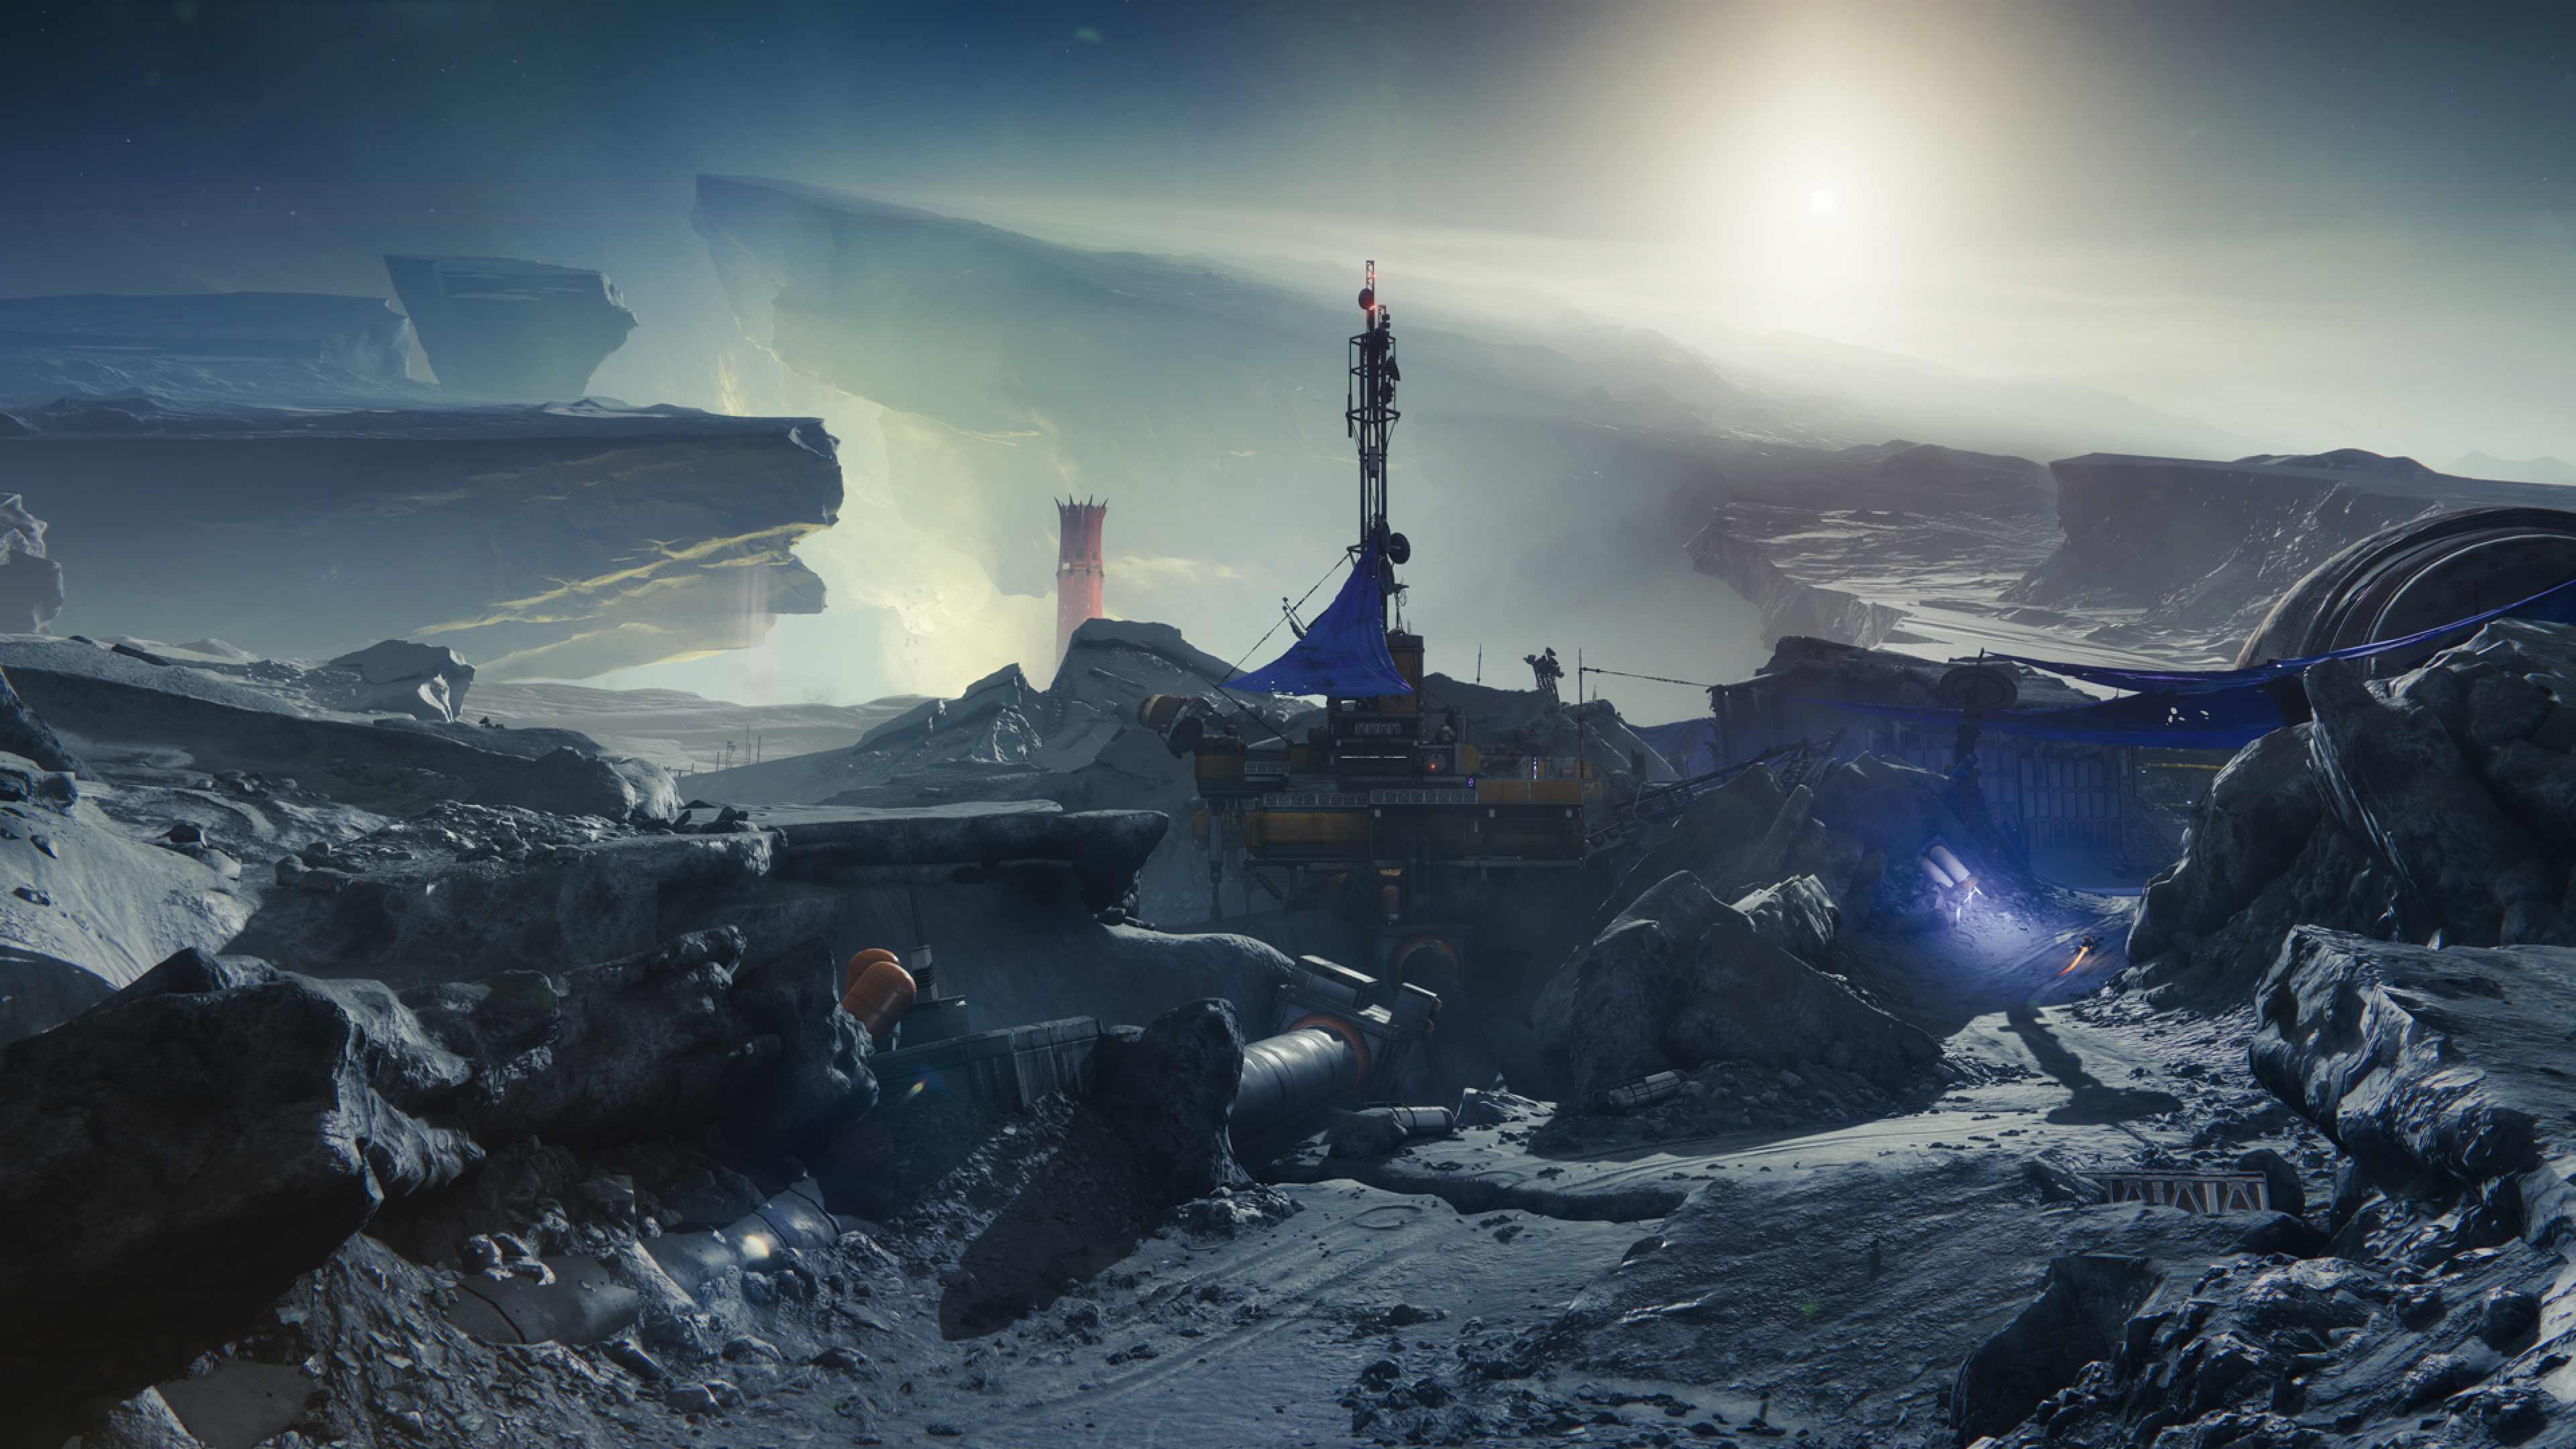 3840x2160 Destiny 2 Environment 4k Wallpaper Hd Games 4k Wallpapers Images Photos And Background